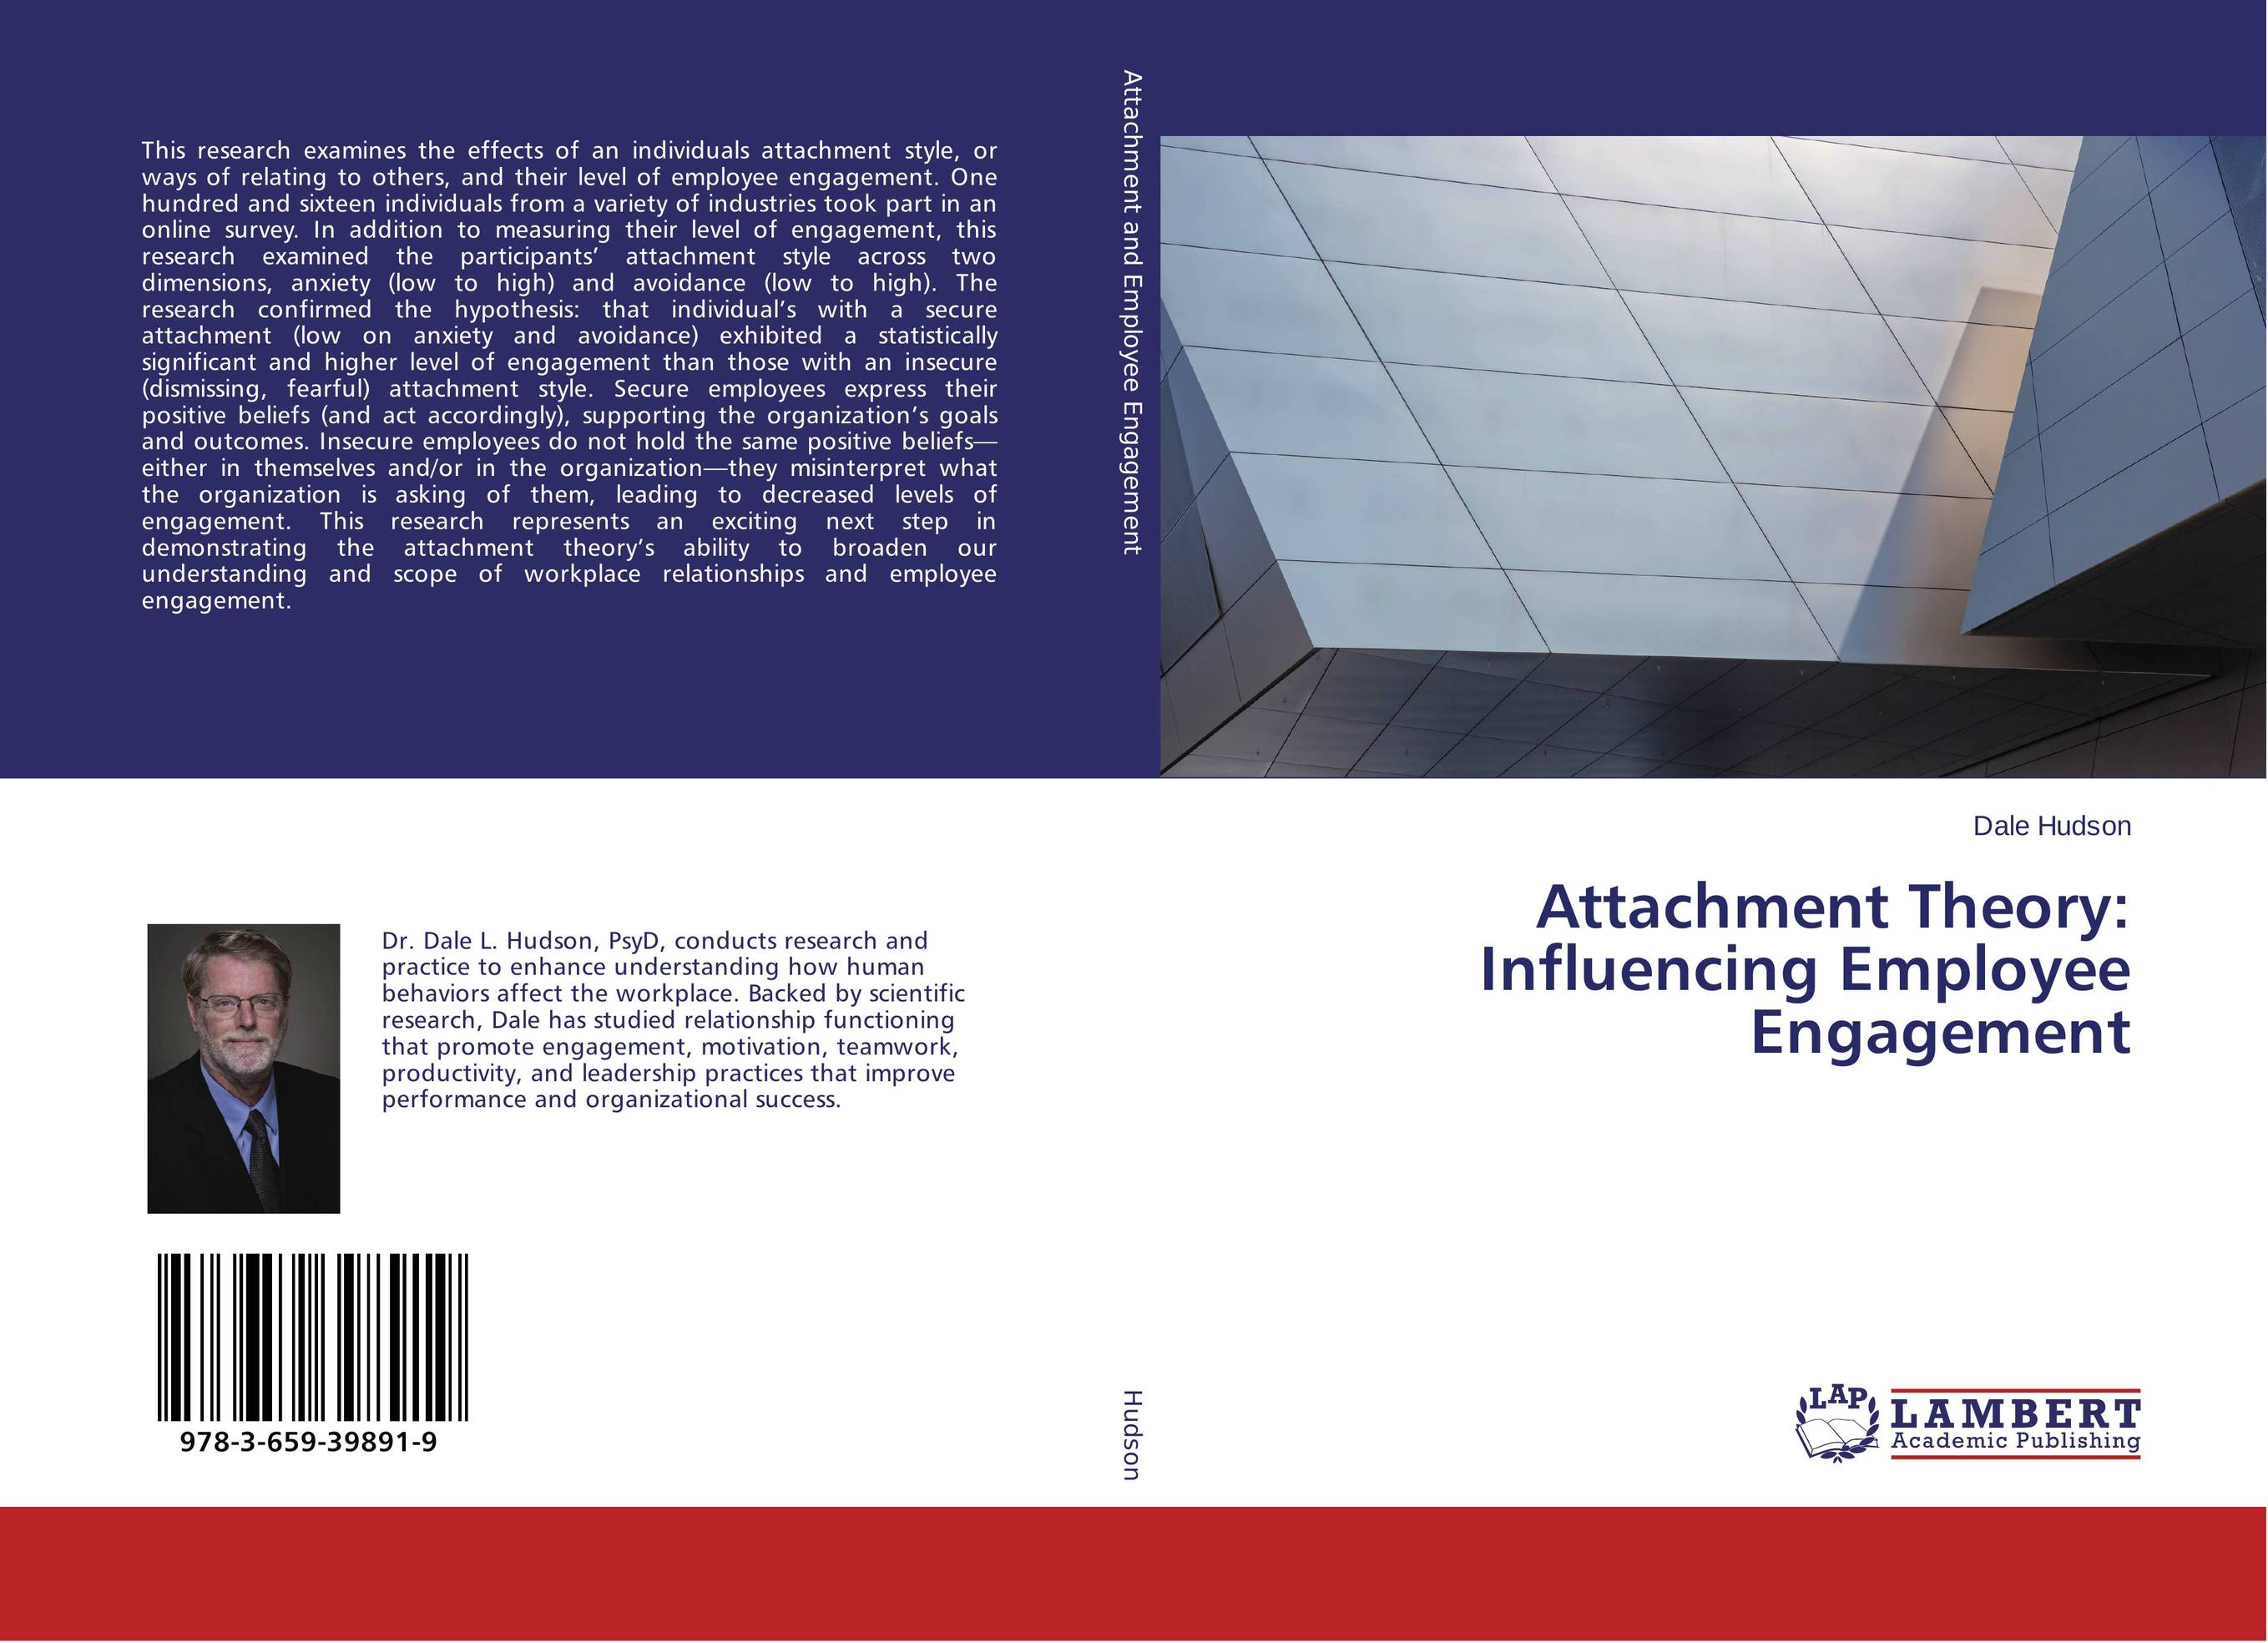 Attachment Theory: Influencing Employee Engagement